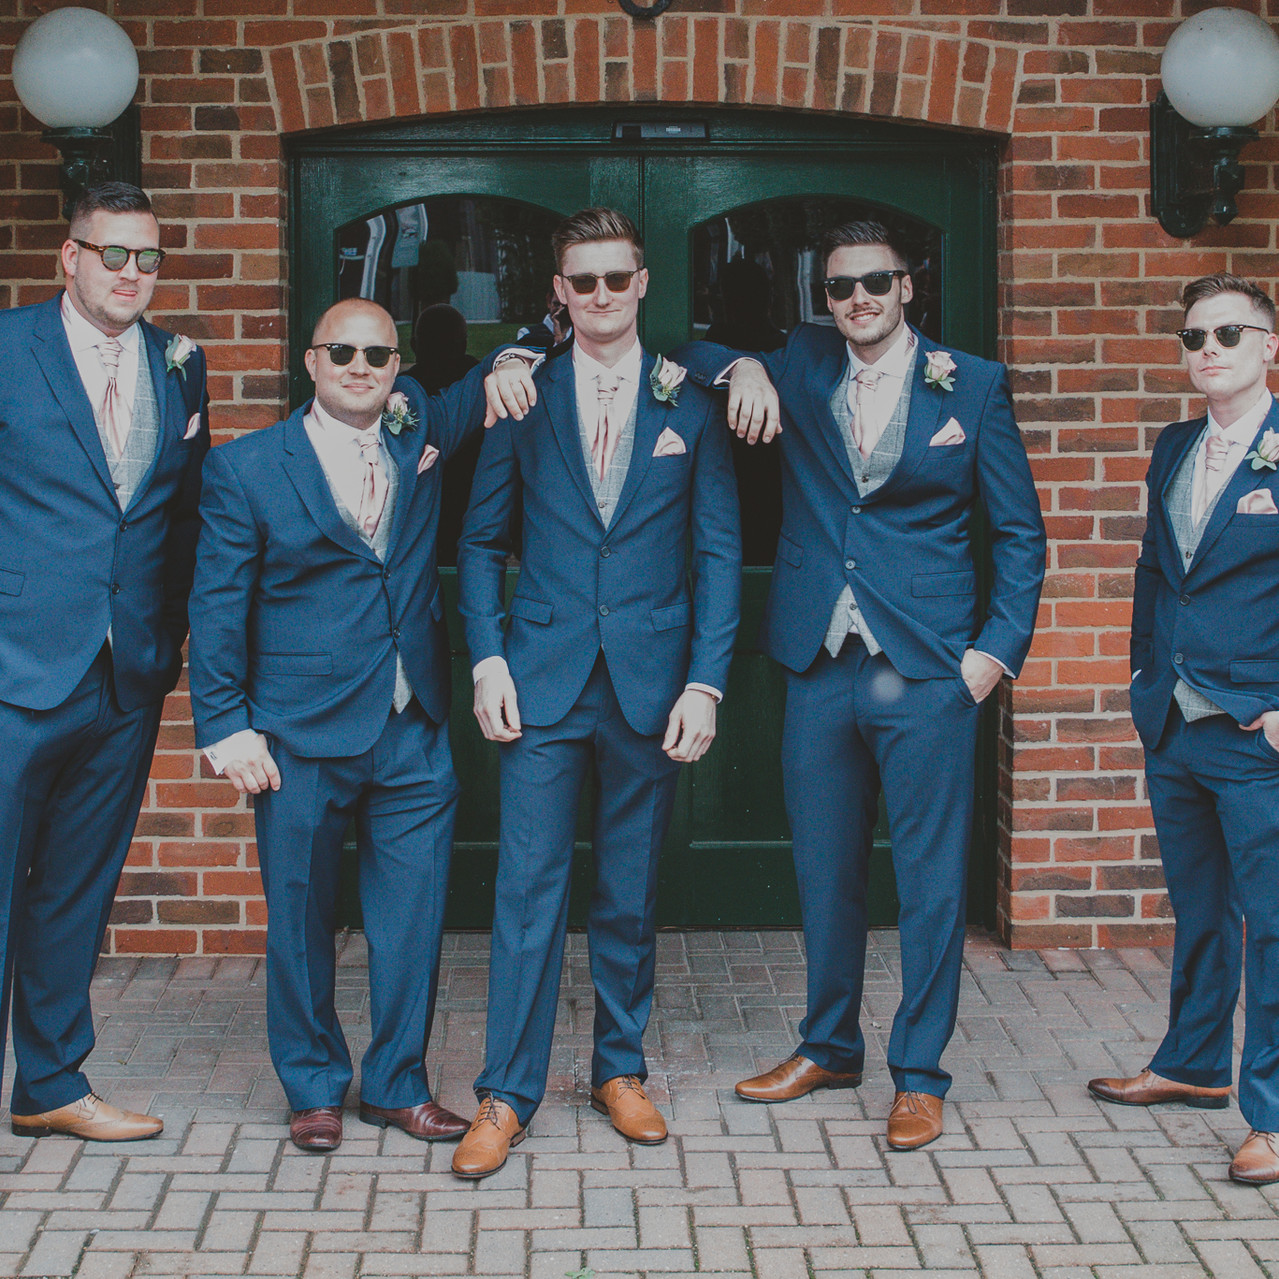 Fay Wedding - Thursford Collection at the Garden Pavilion, Norfolk. Cool Guys